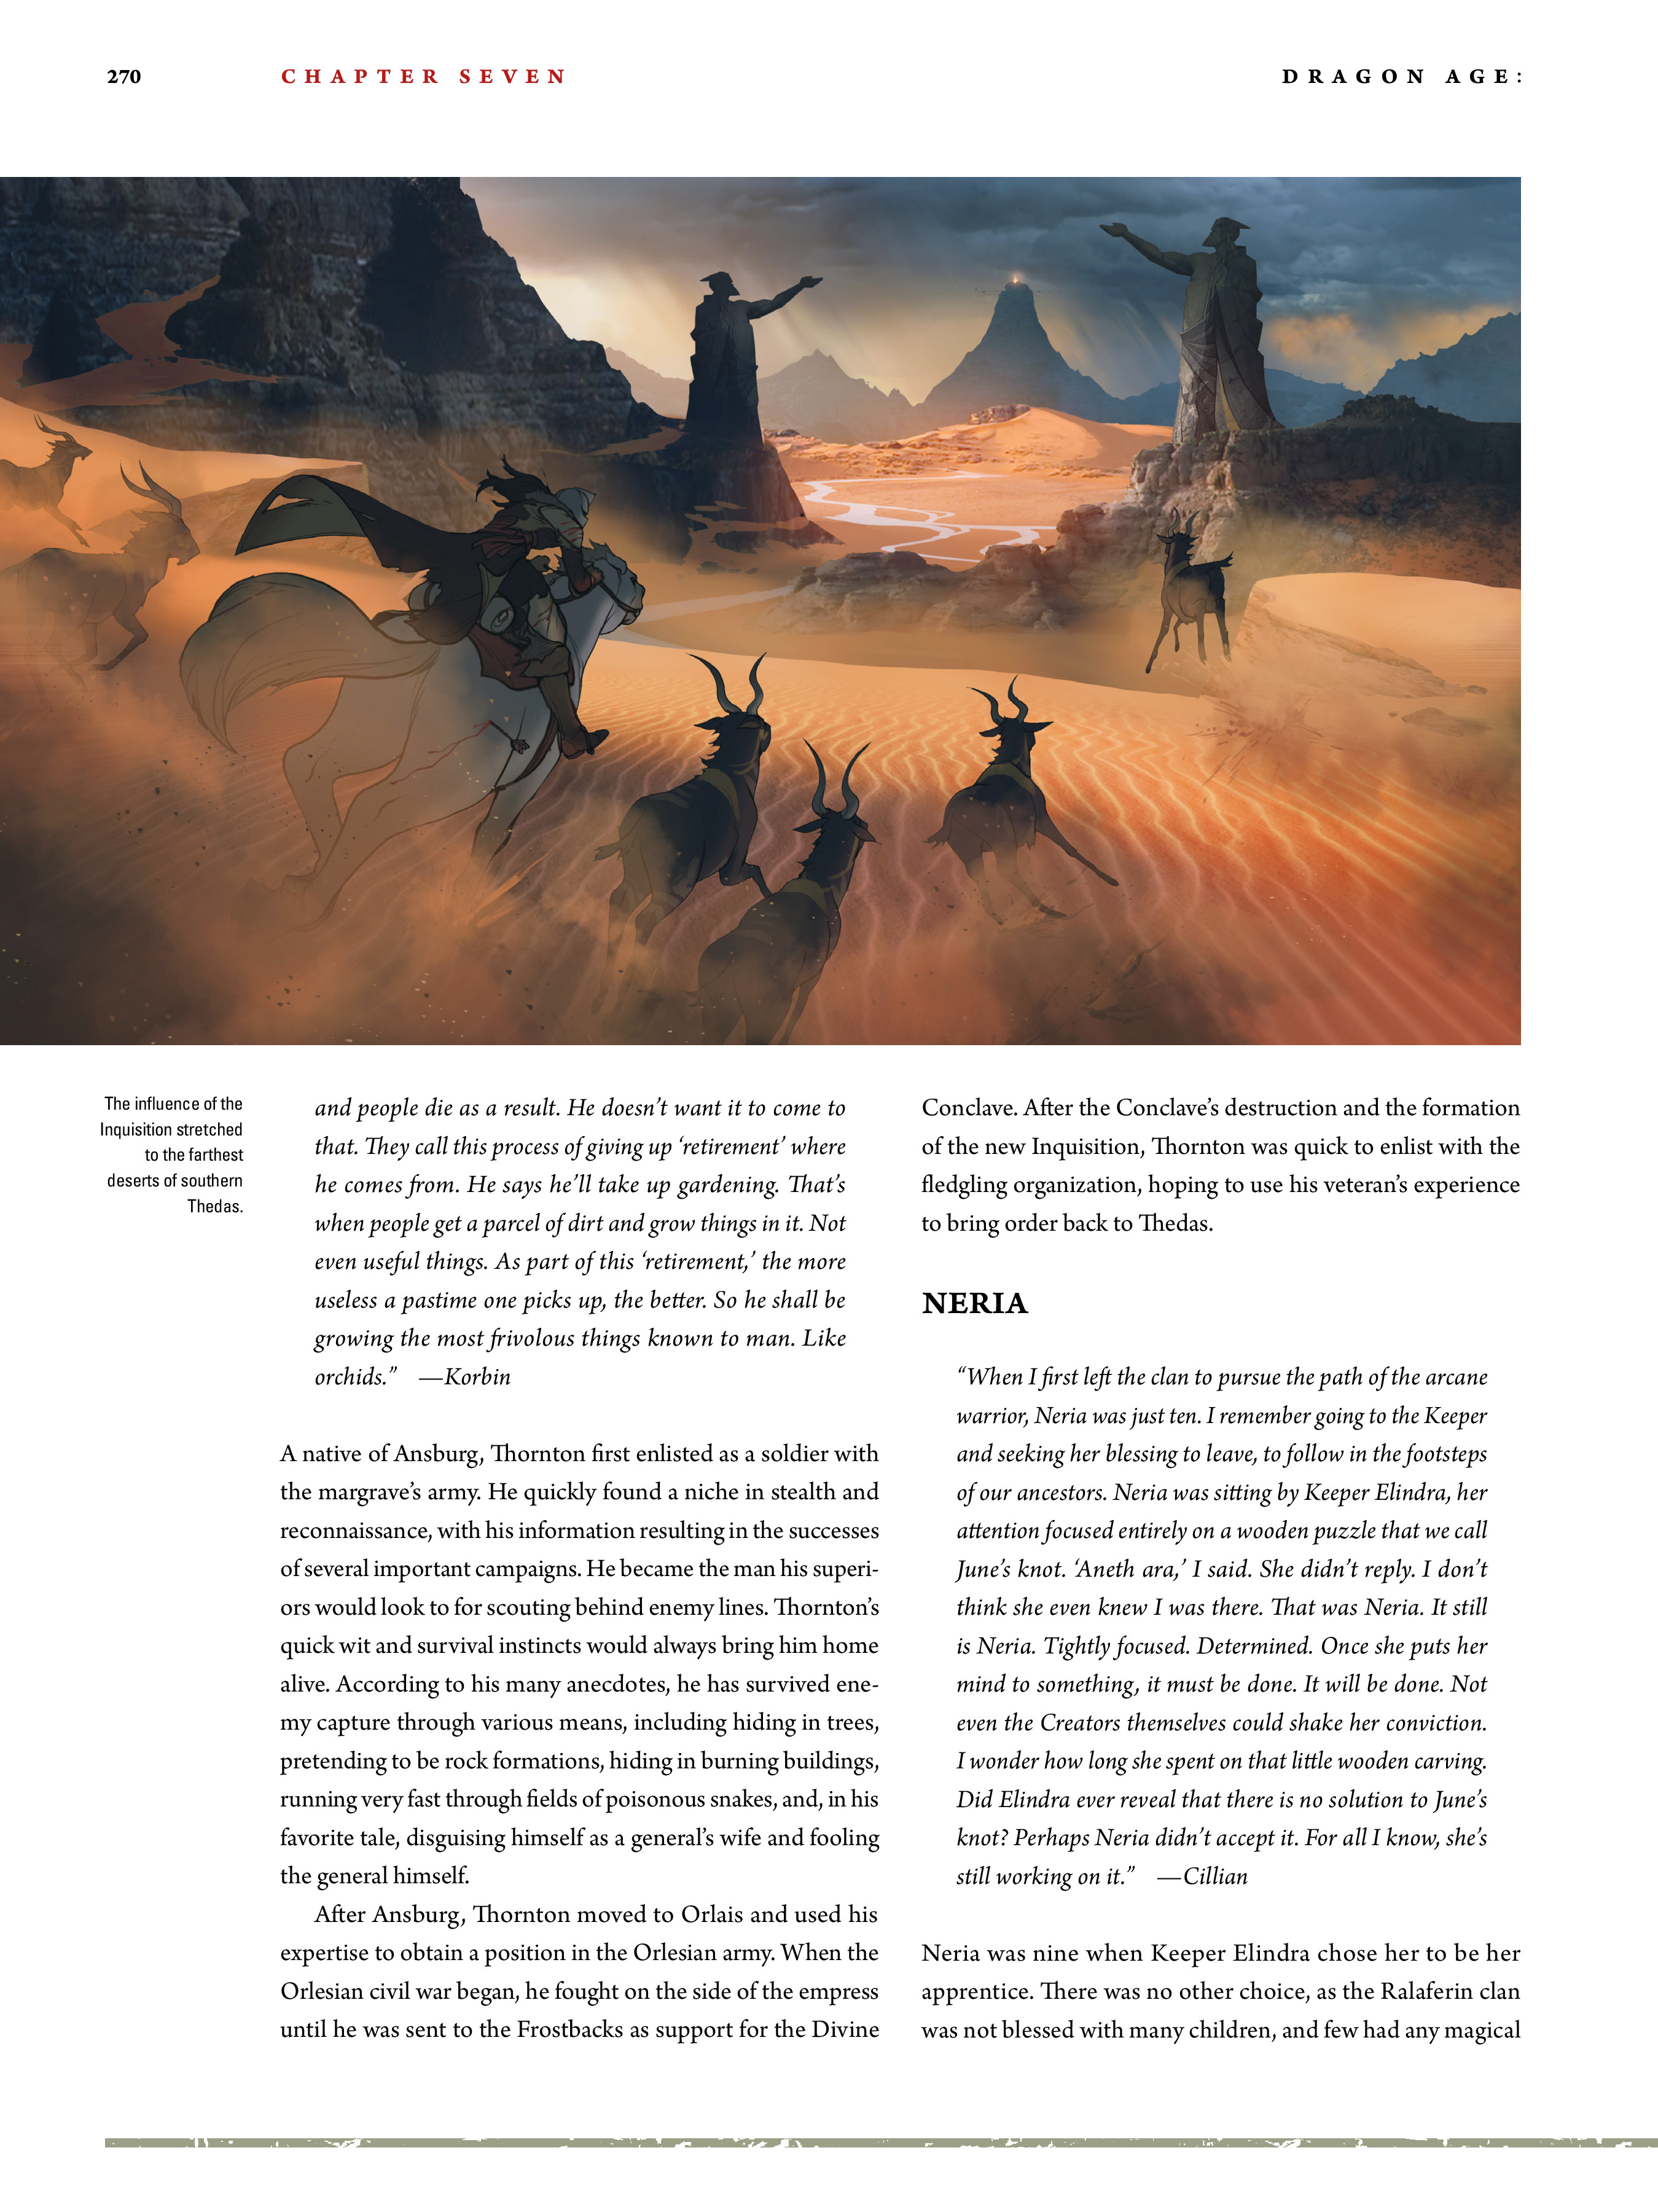 Read online Dragon Age: The World of Thedas comic -  Issue # TPB 2 - 262